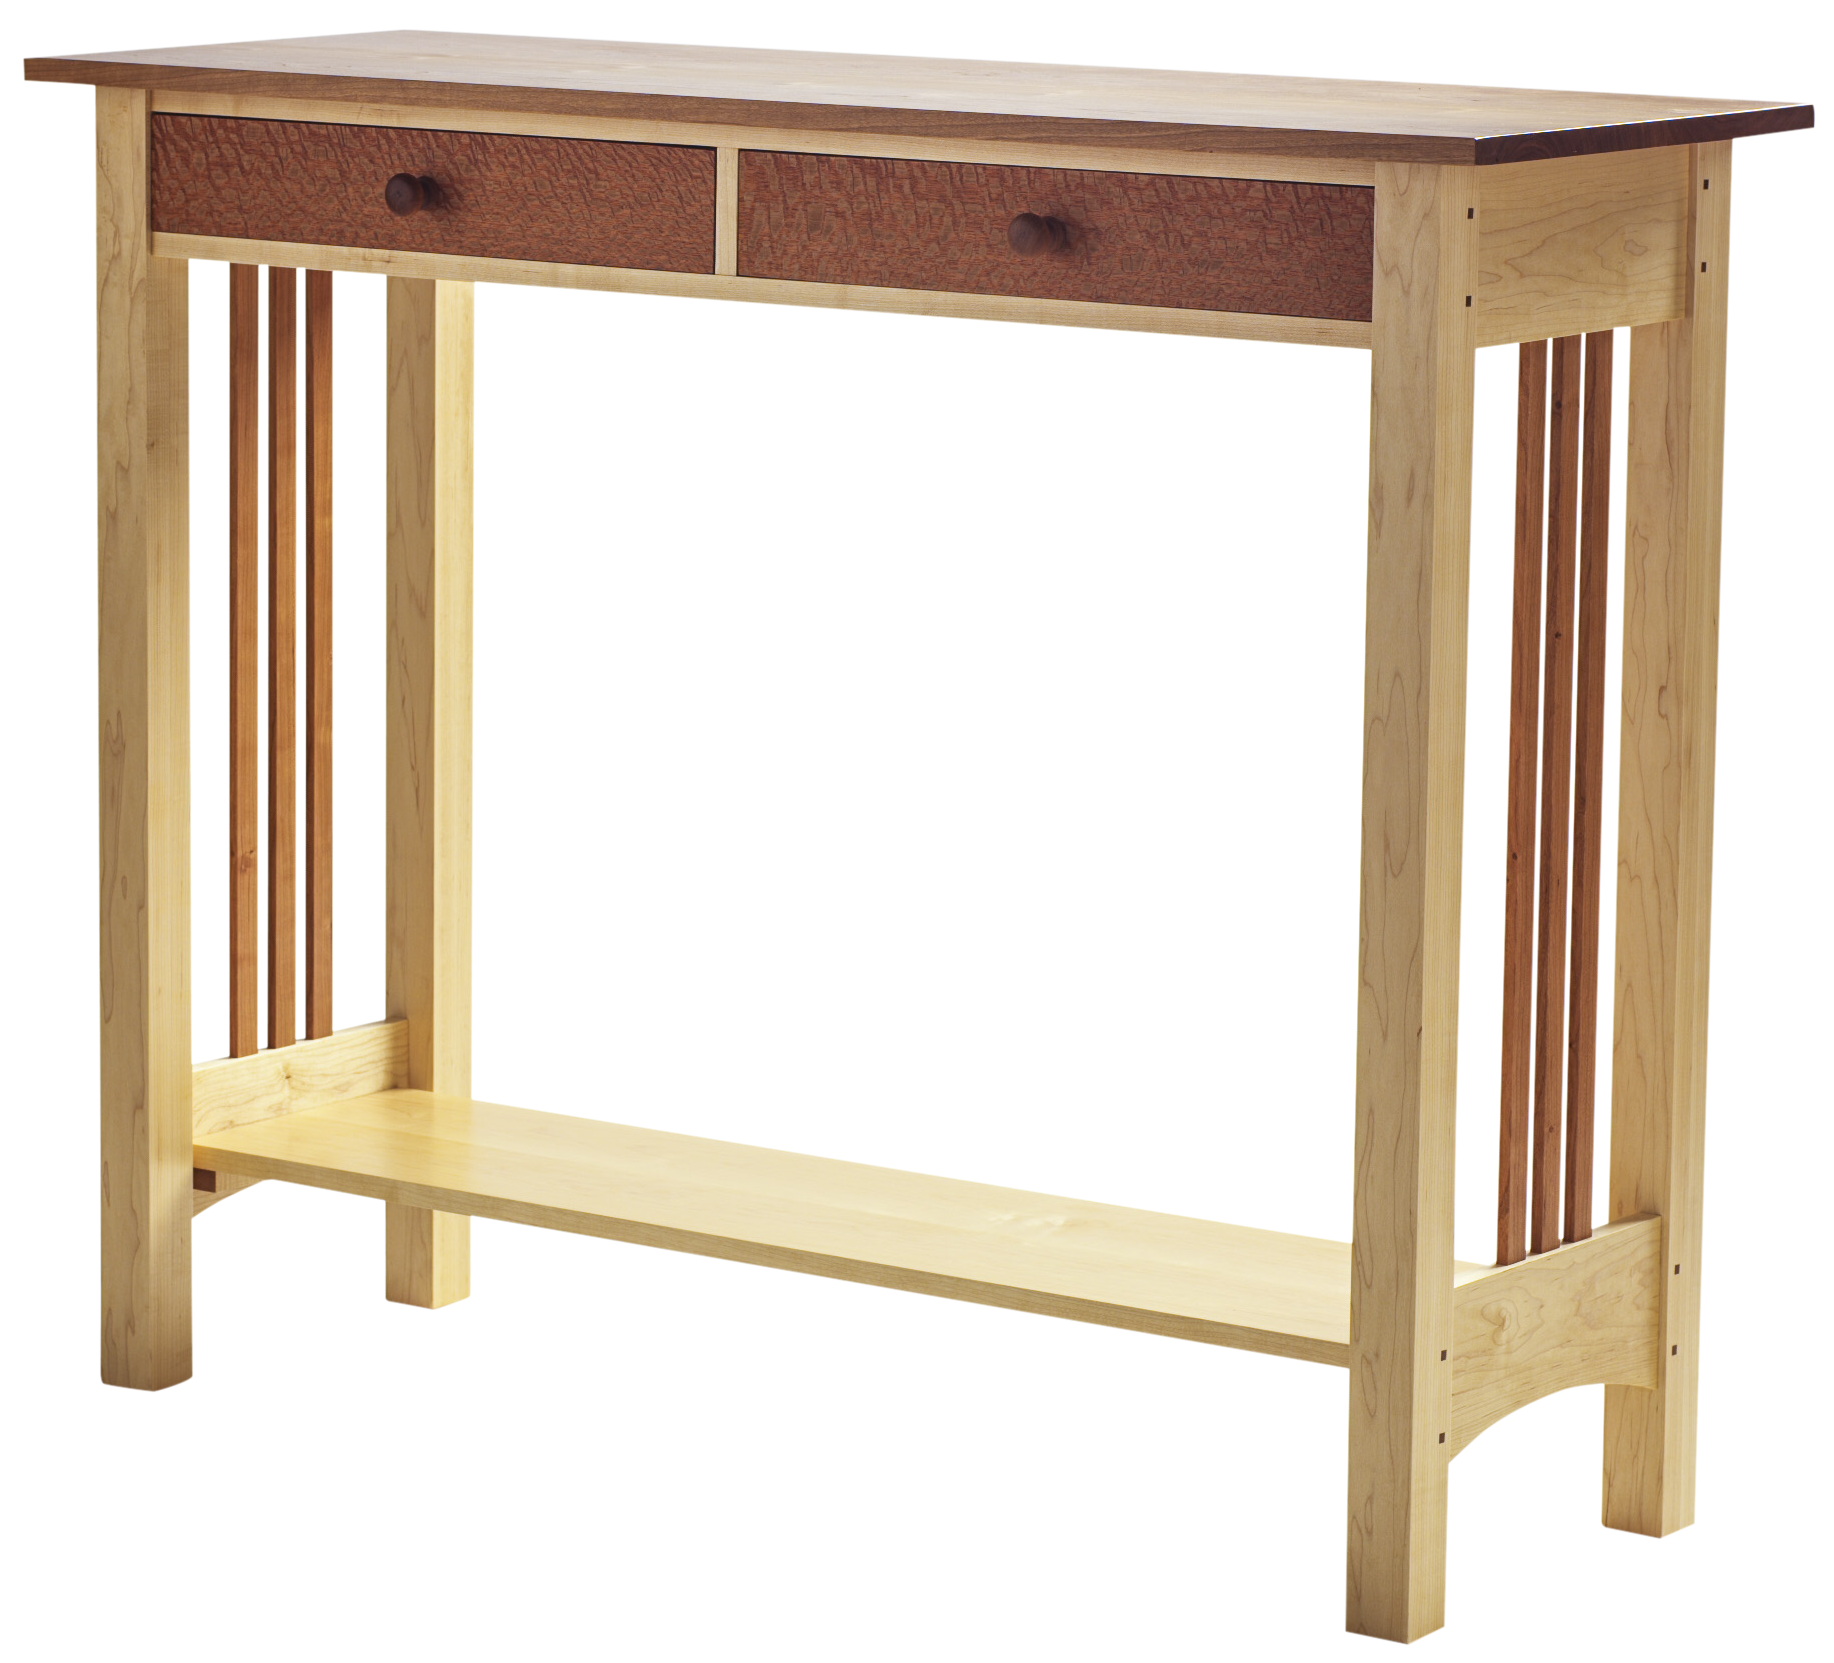 Southern_Joinery_Mission_Entry_Table